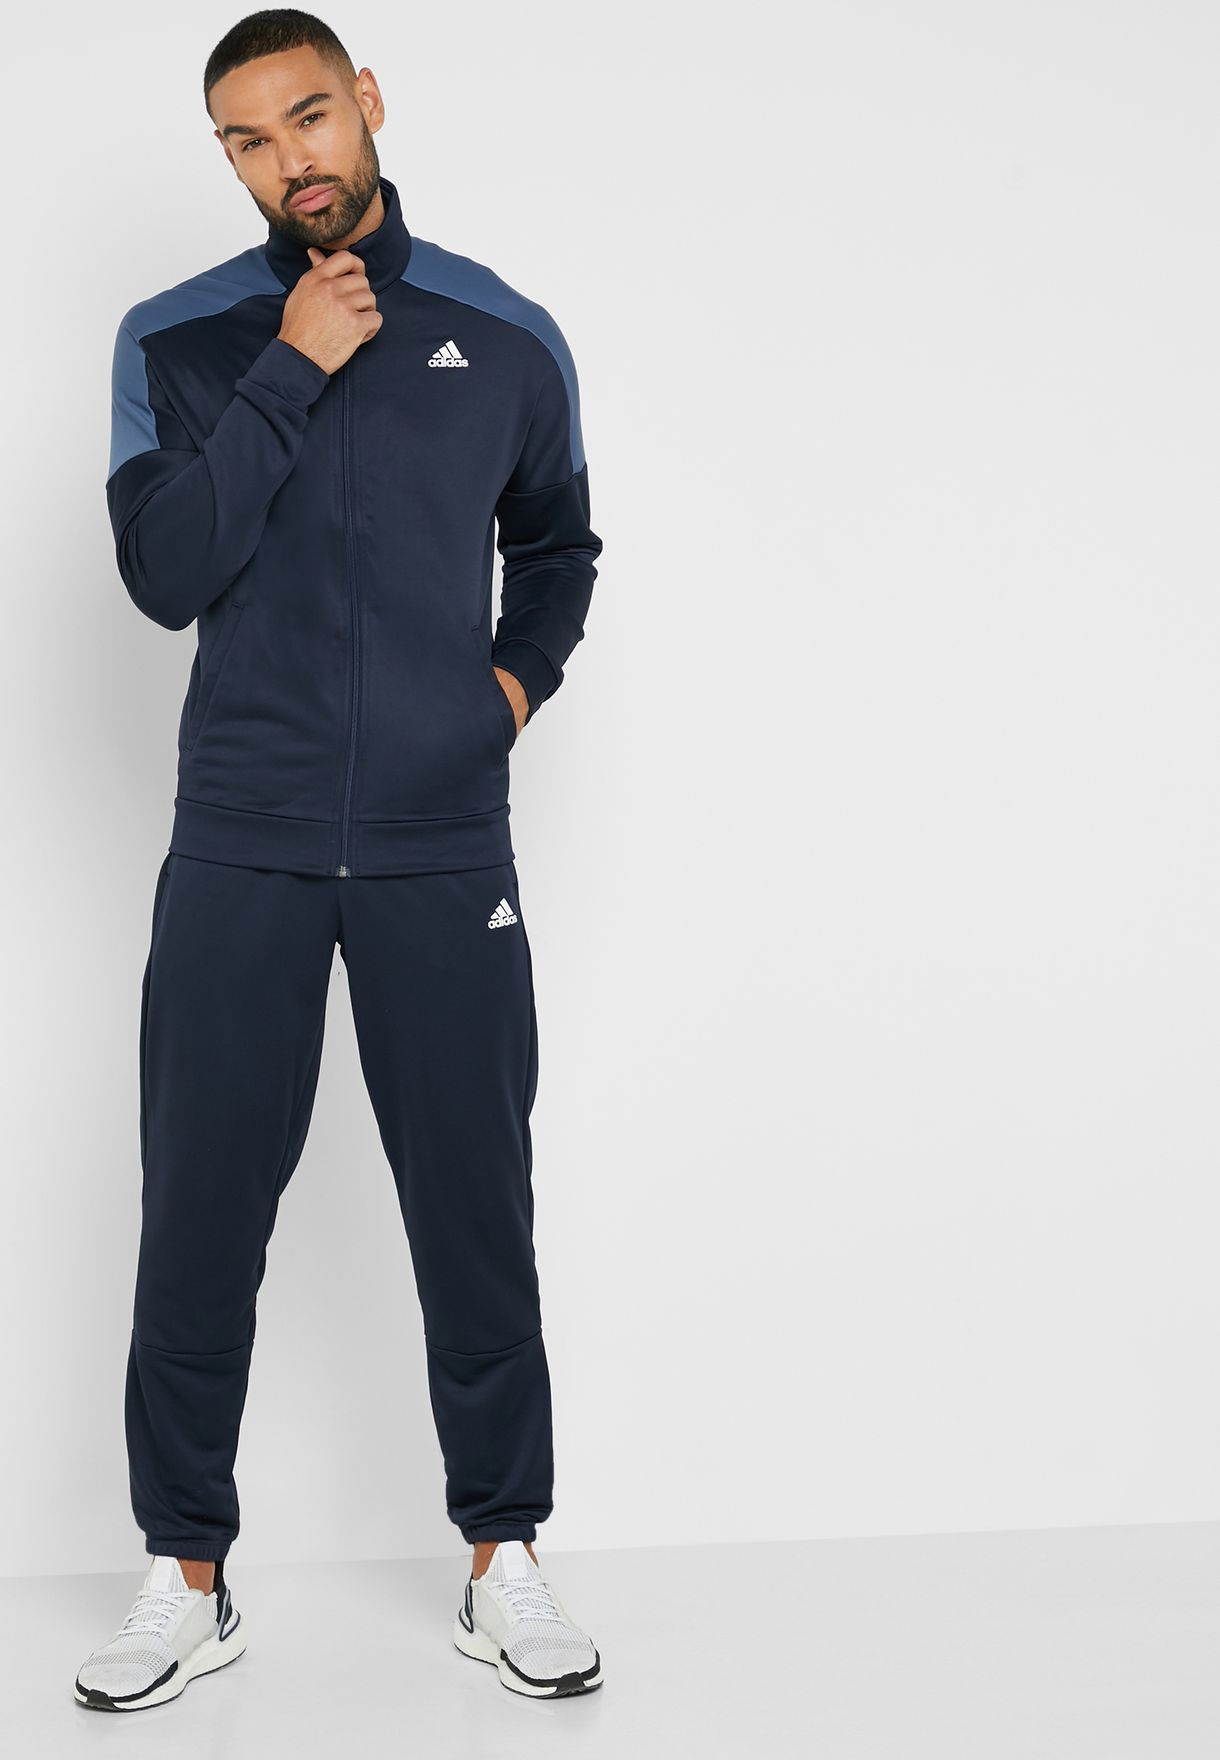 ff9e03aca Shop adidas navy MTS Badge Of Sport Tracksuit EB7653 for Men in UAE ...